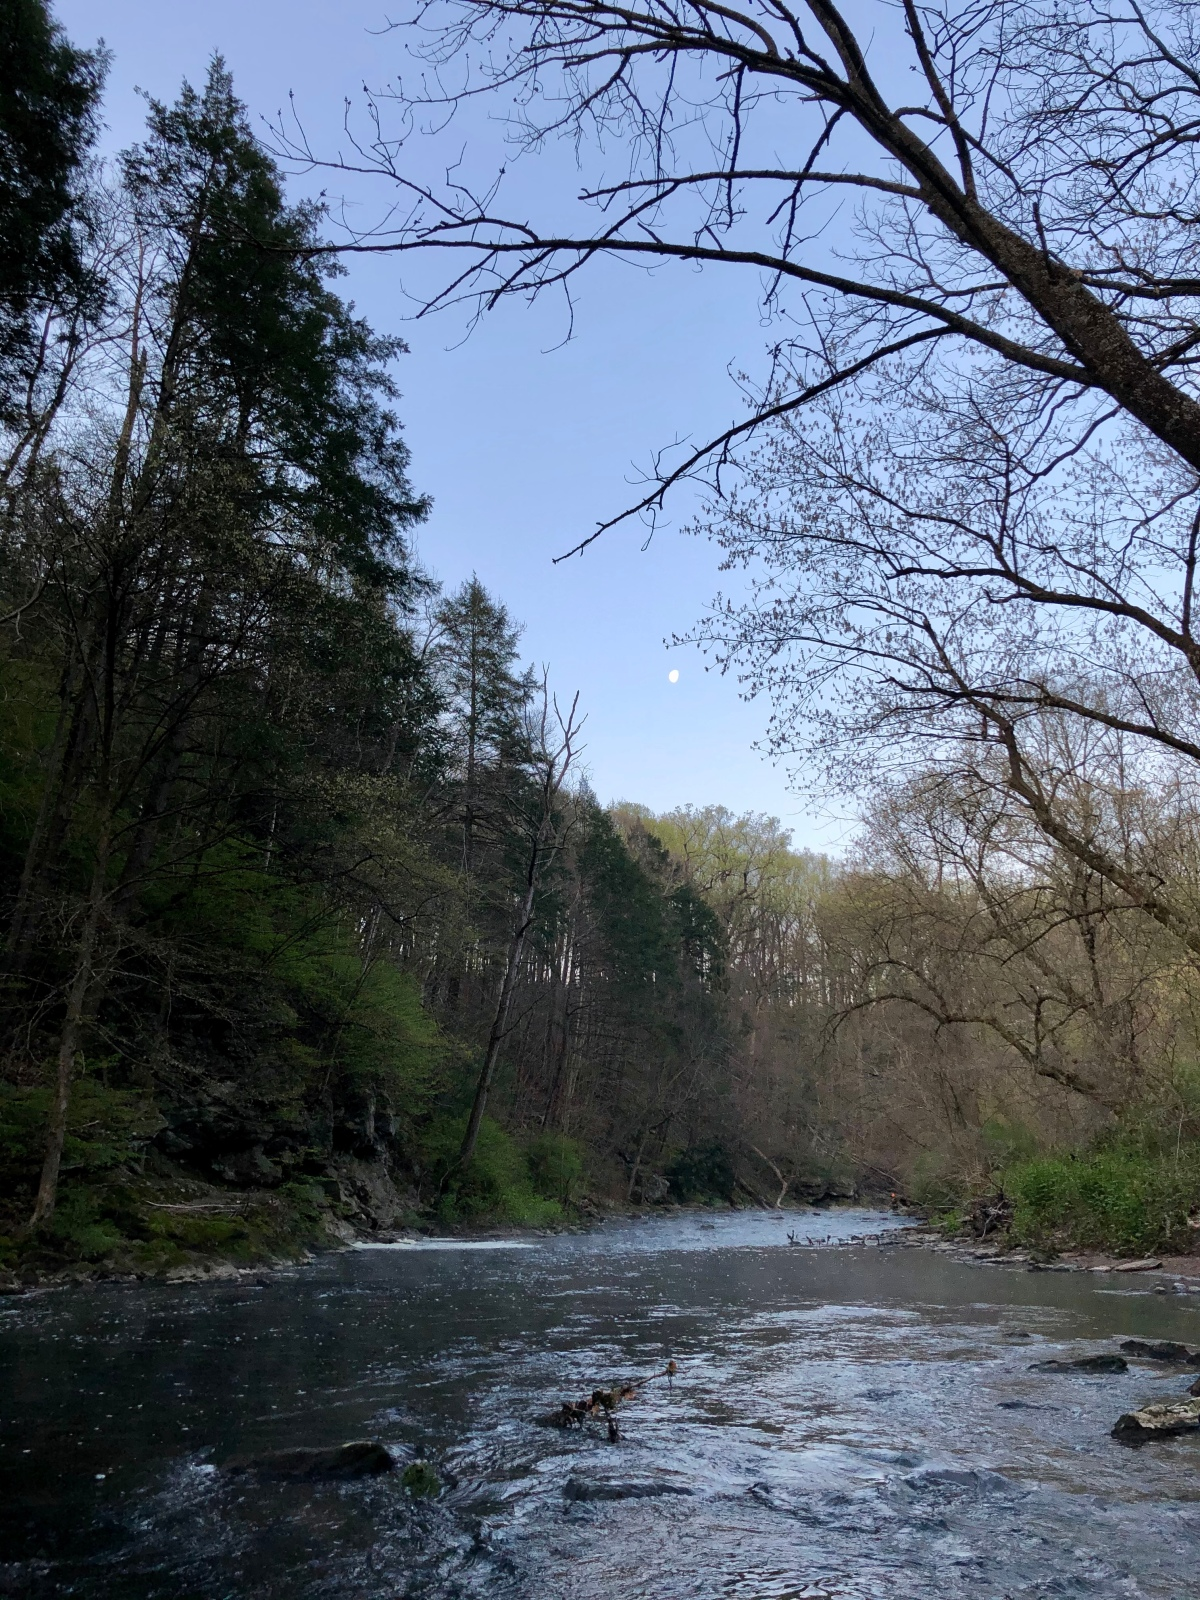 DELVAL OUTDOORS NEWS ROUNDUP, APRIL 14, 2020